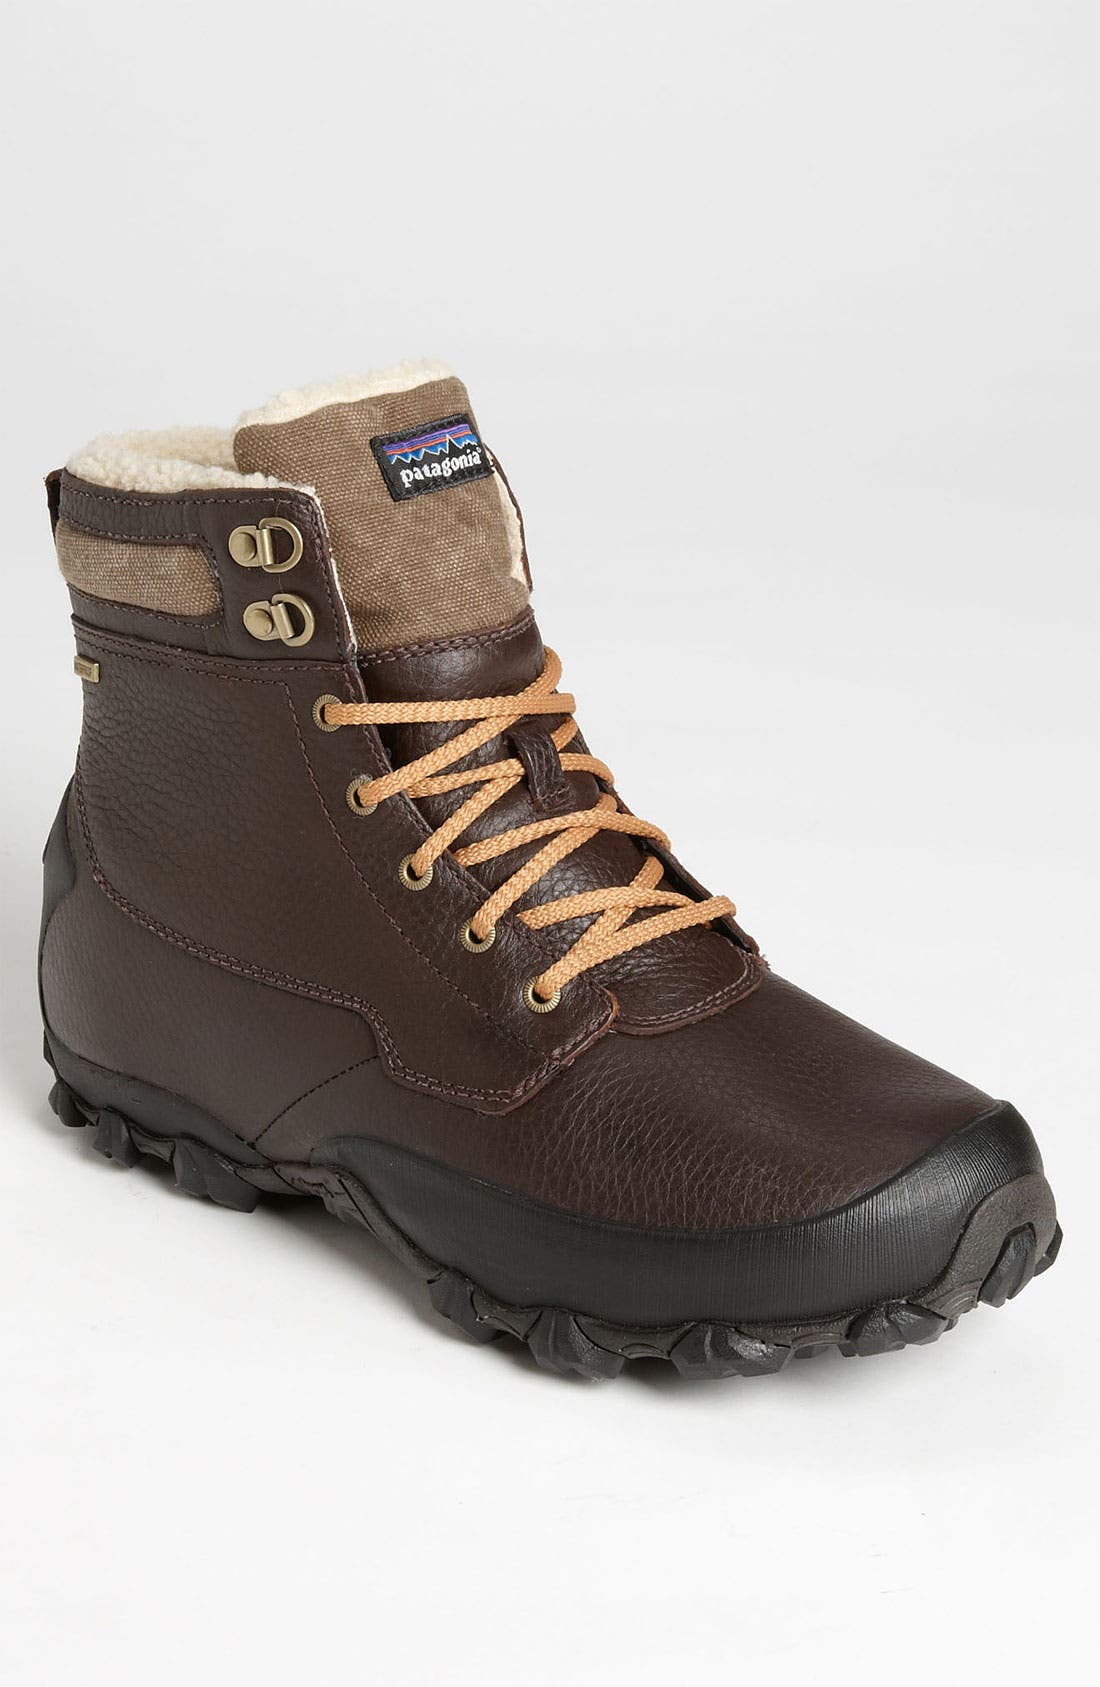 Alternate Image 1 Selected - Patagonia 'Snow Drifter' Snow Boot